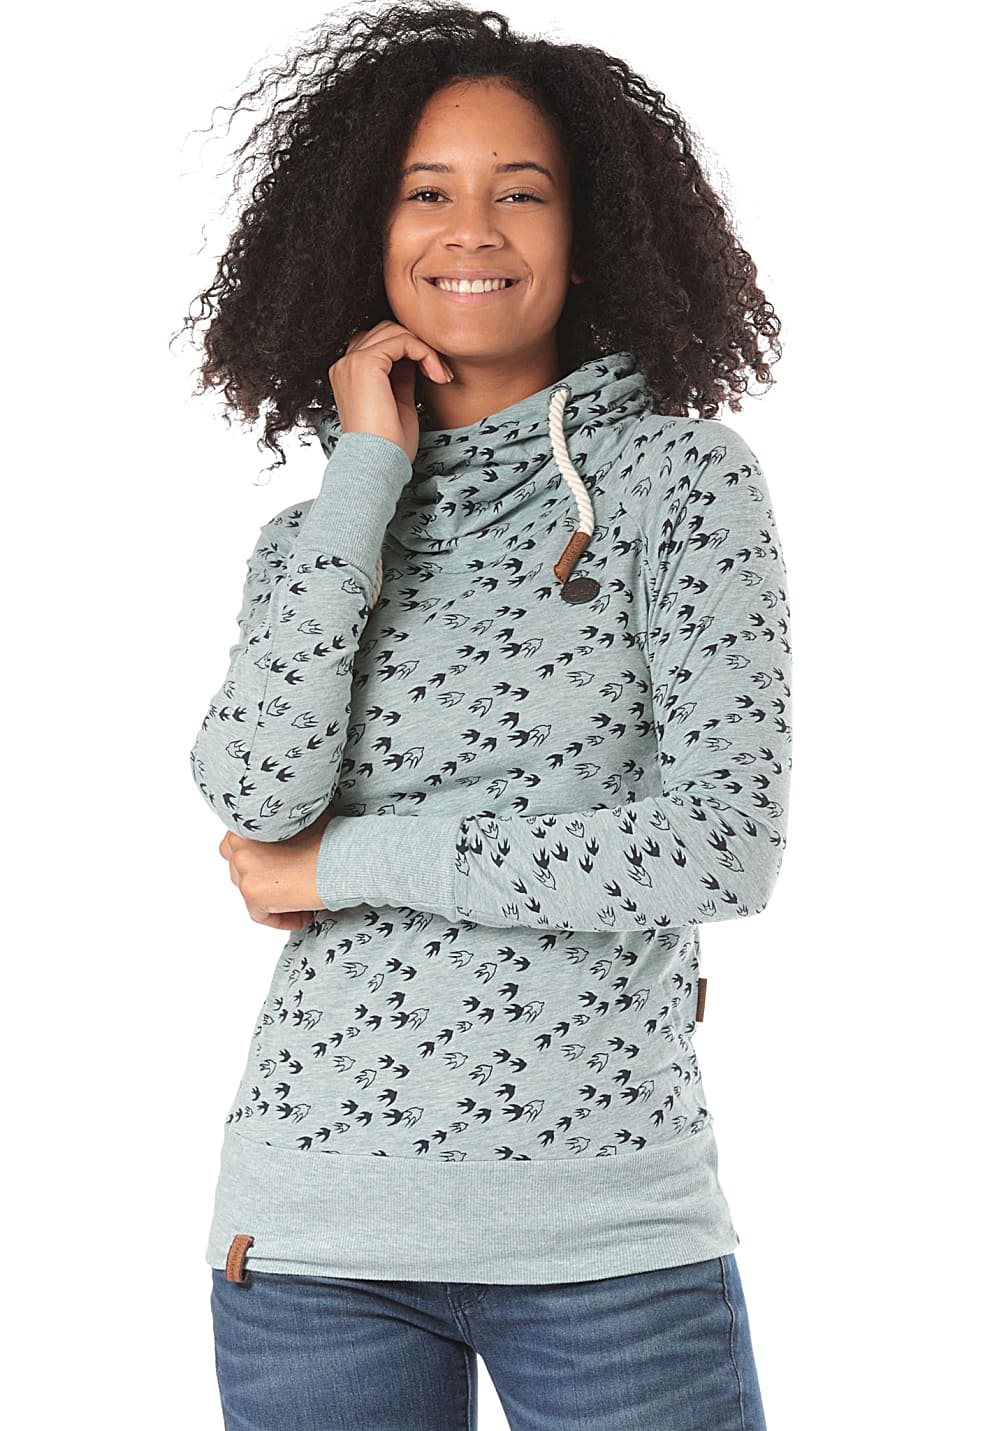 NAKETANO Mandy Will Vögel (N) Sweat à capuche pour Femme Vert